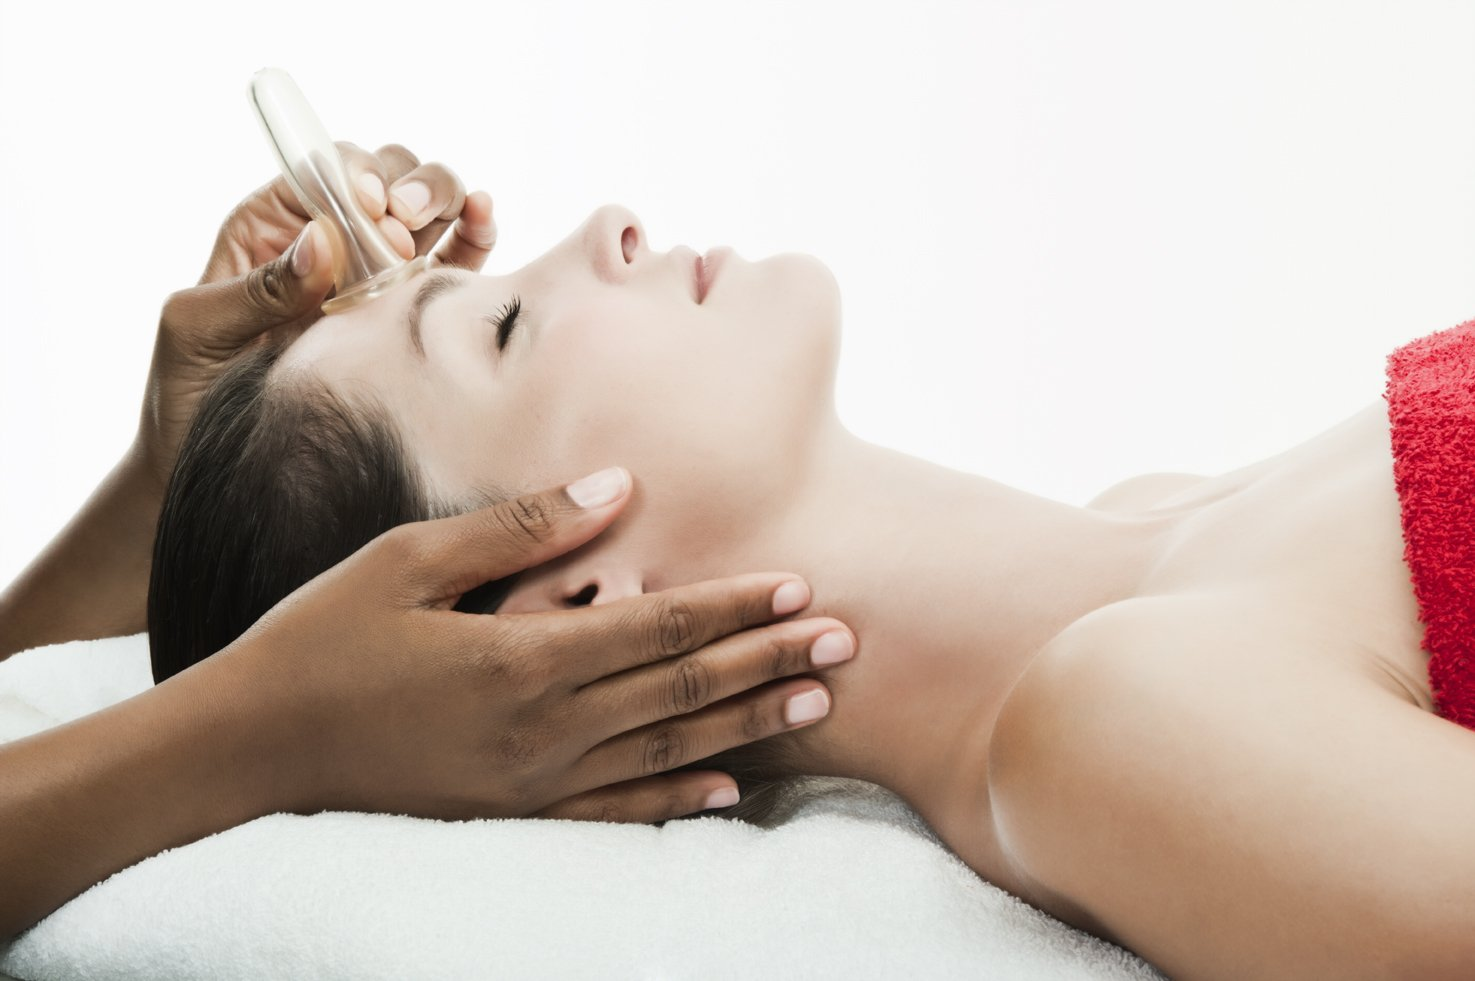 Bellabaci Professional ChineseCuppingTraining System - Learn how to Cupping for Massage Therapists - Massage Training DVD Videos, Ultimate Guide - Become a Cupping Therapist - Complete Cupping Kit